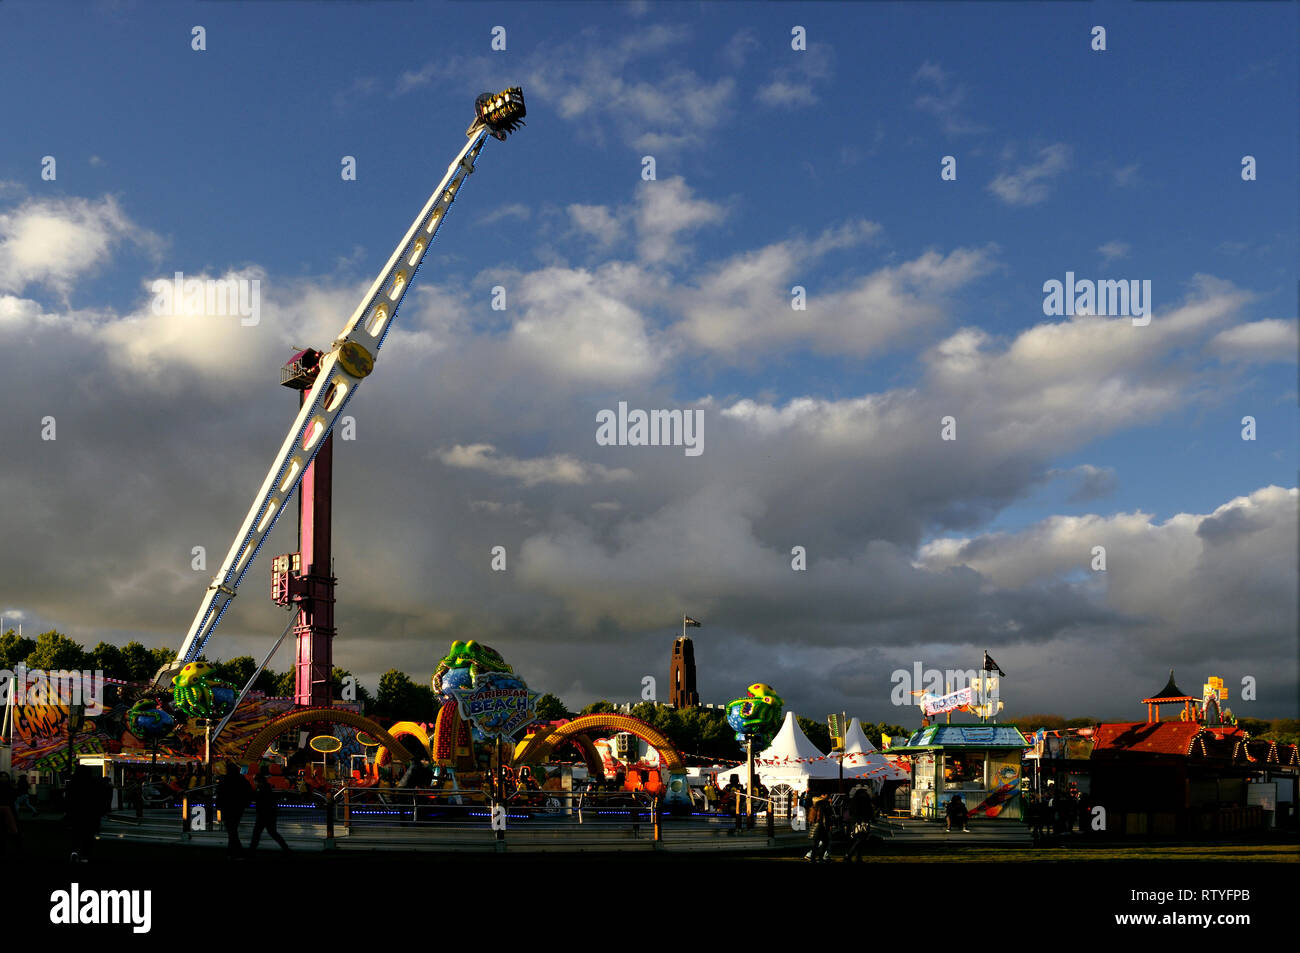 https www alamy com malieveld the hague the netherlands friday 13th april 2017 the kings annual birthday fair koningskermis on the malieveld booster ride charl image239091619 html